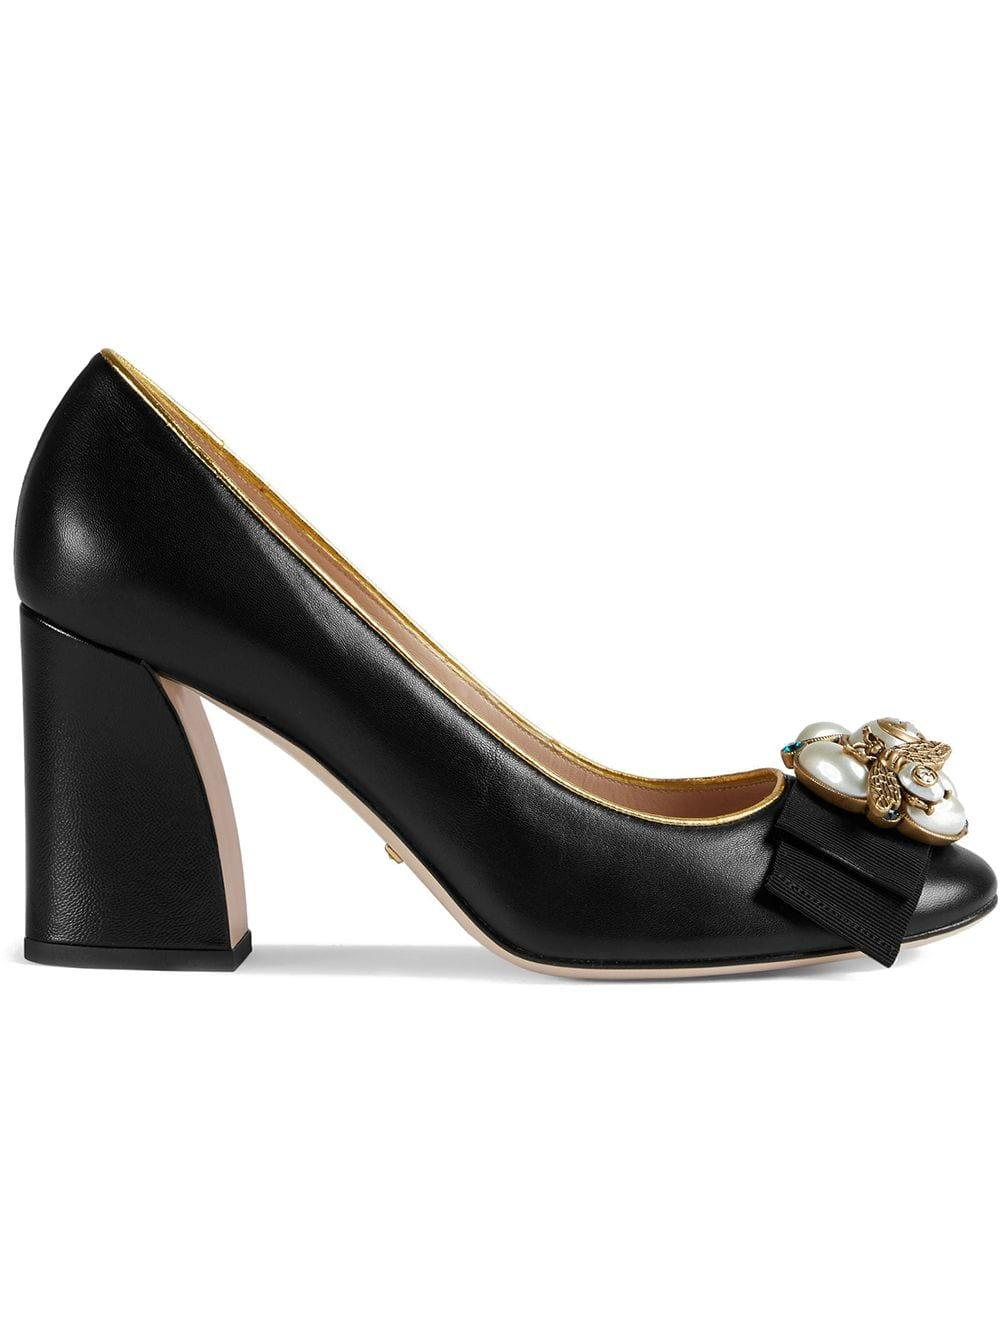 0f81474e2 Gucci Leather Mid-heel Pump With Bee in Black - Lyst